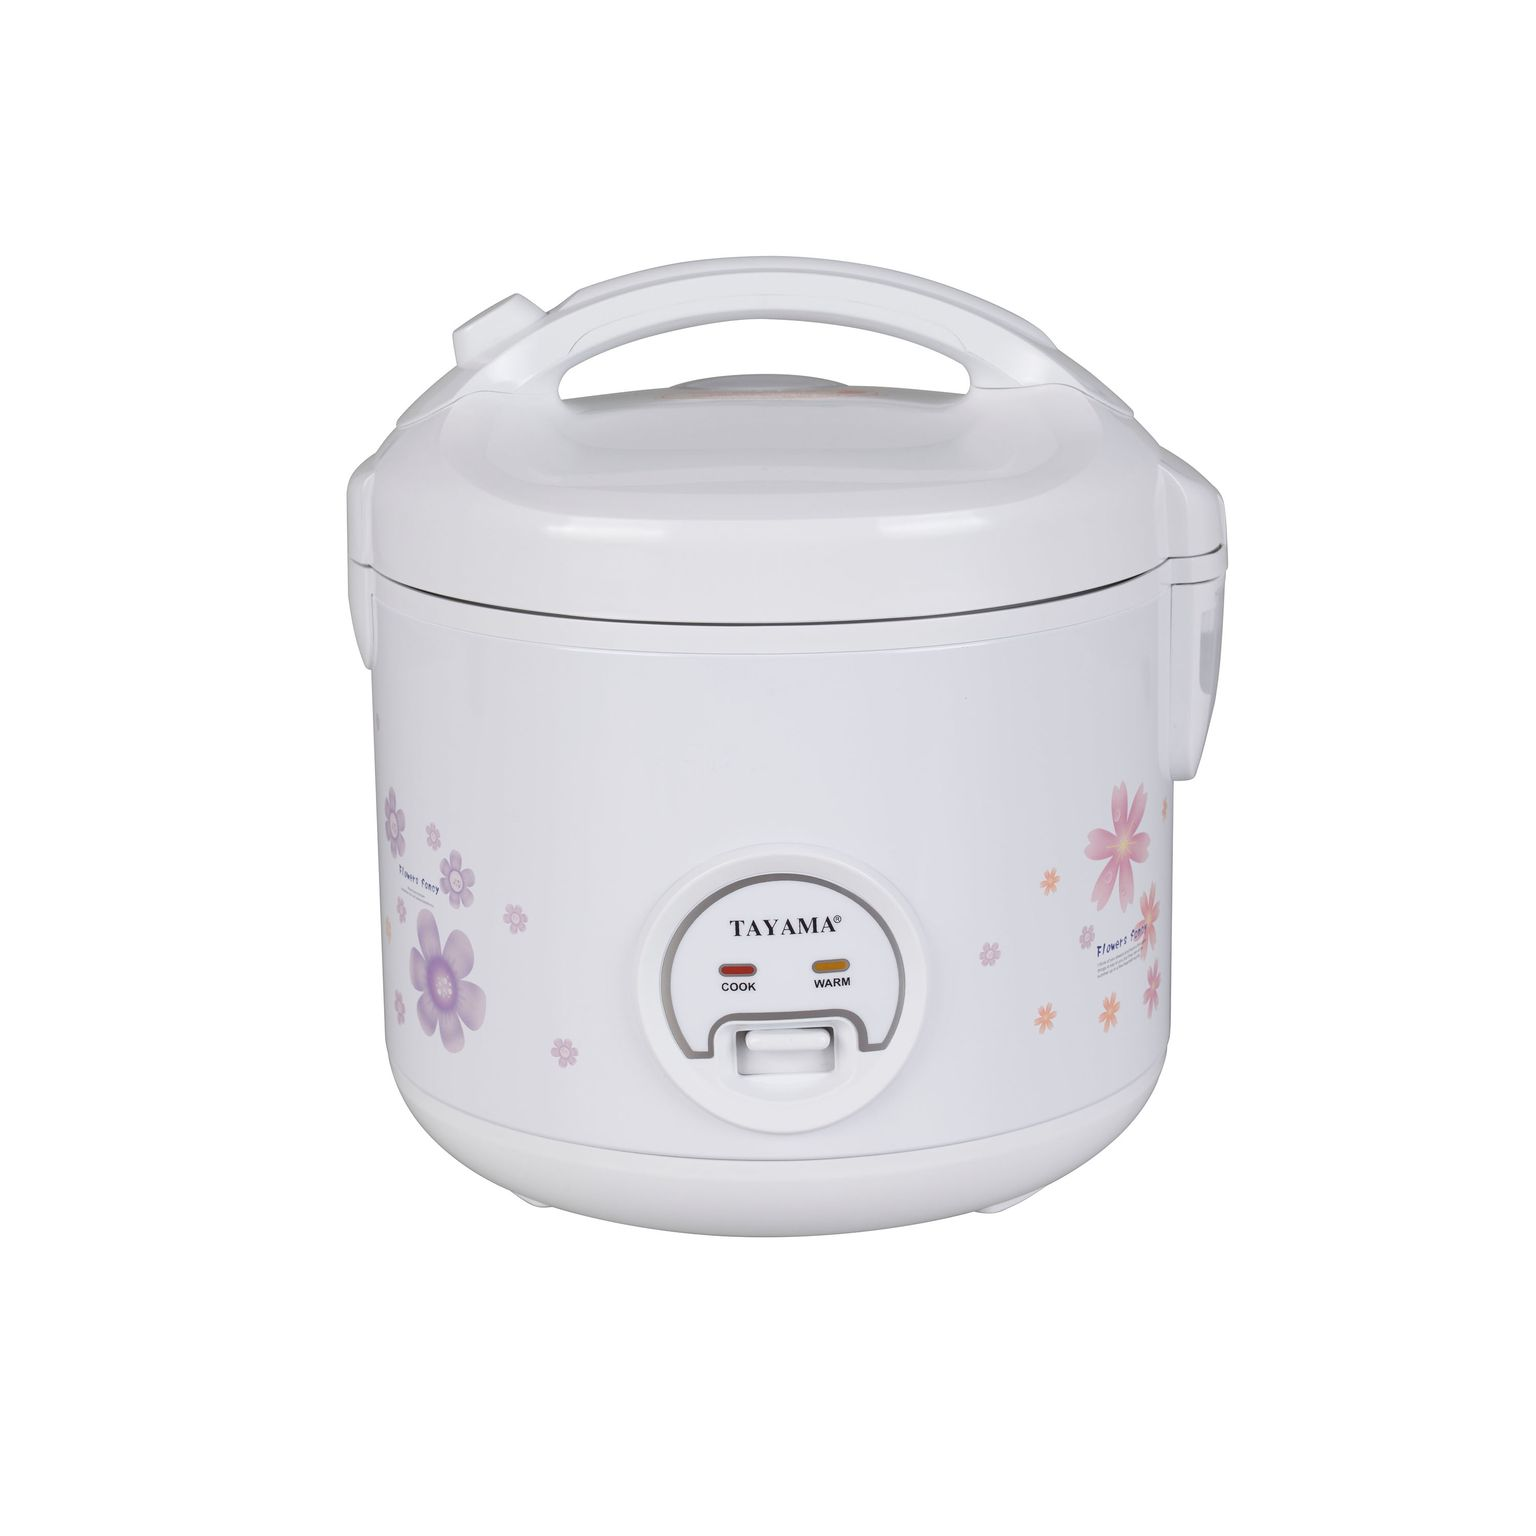 Tayama TRC-10  Automatic Rice Cooker & Food Steamer 10 Cup